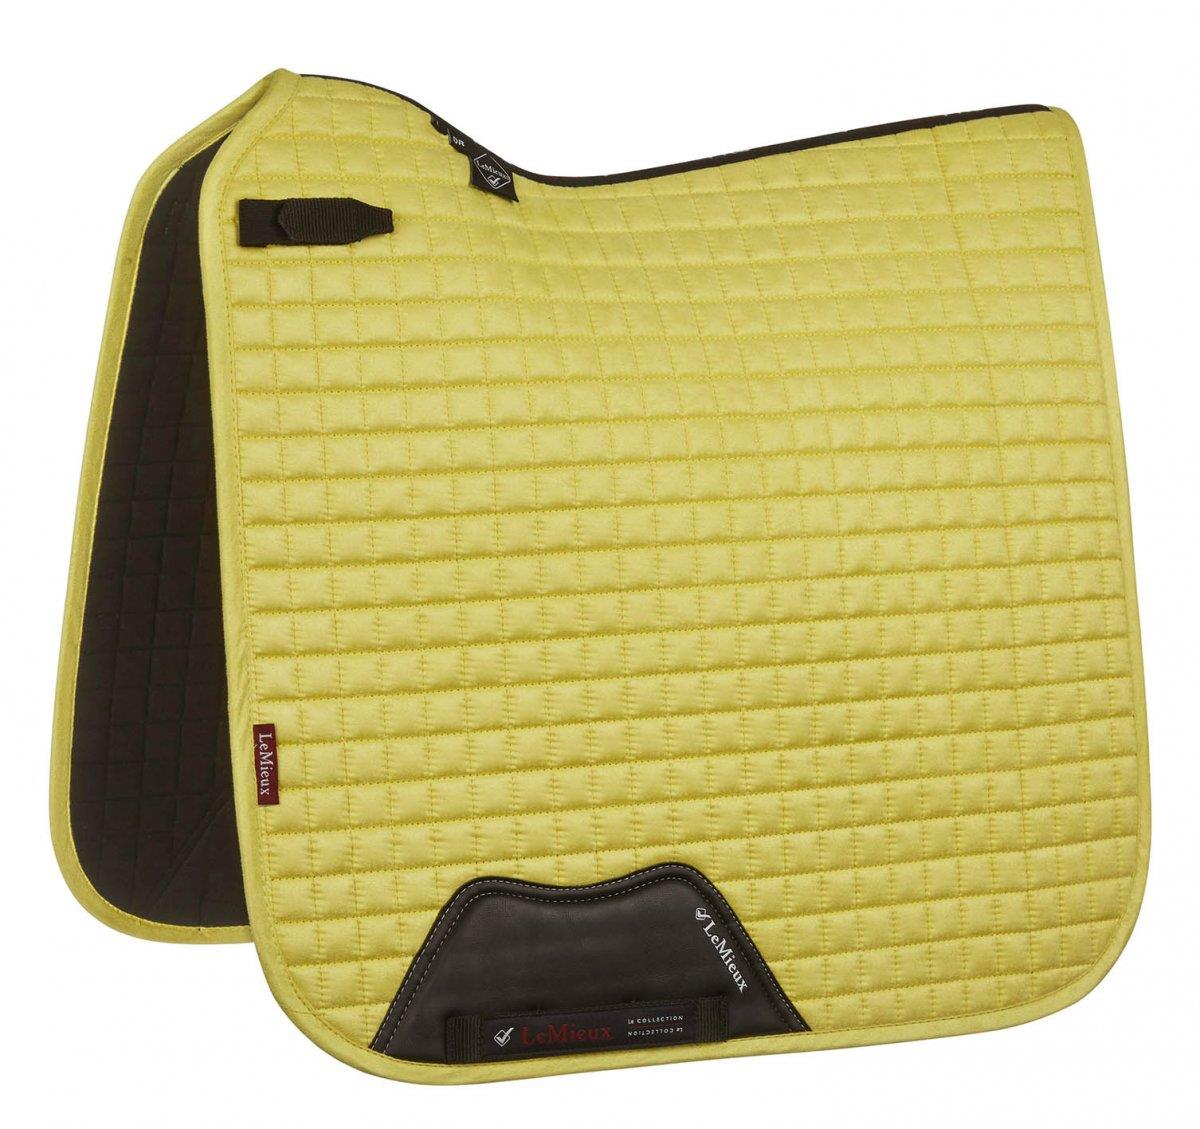 LeMieux-Prosport-Suede-Dressage-Square-Saddlecloth-All-Colours miniature 12